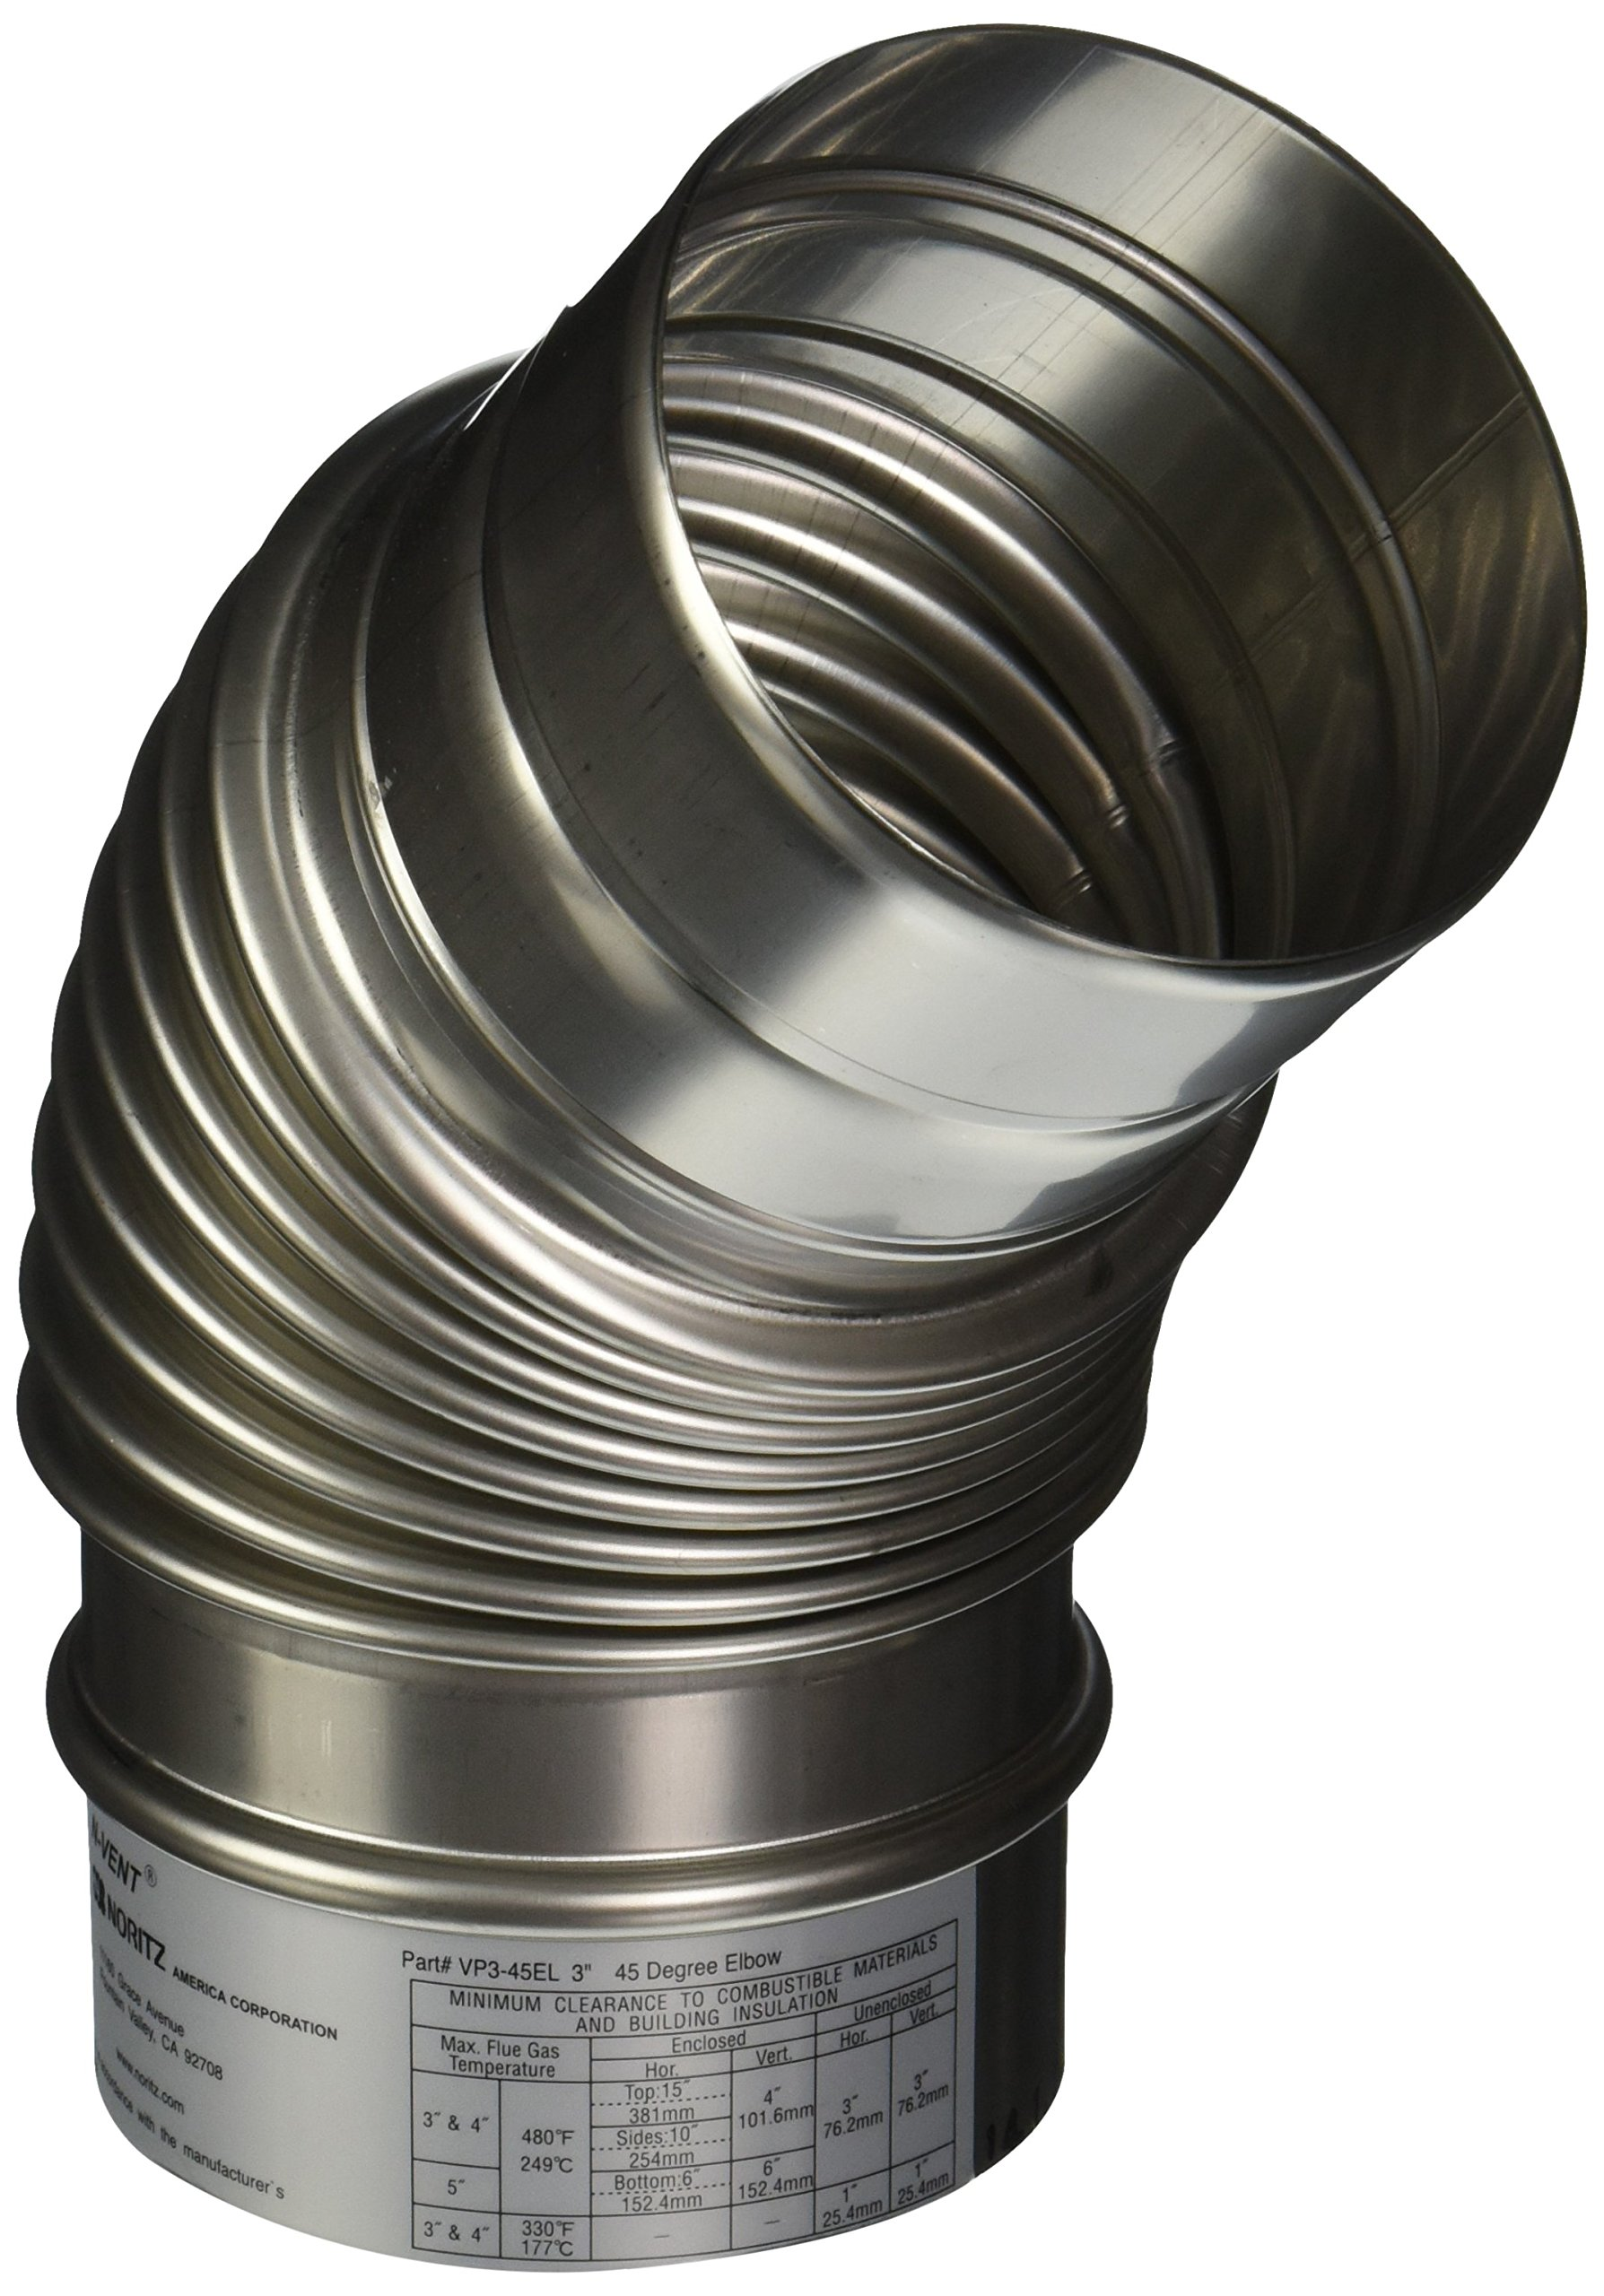 Noritz VP3-45ELBOW 3-Inch Diameter by 45 Degree Stainless Steel Single Wall Venting